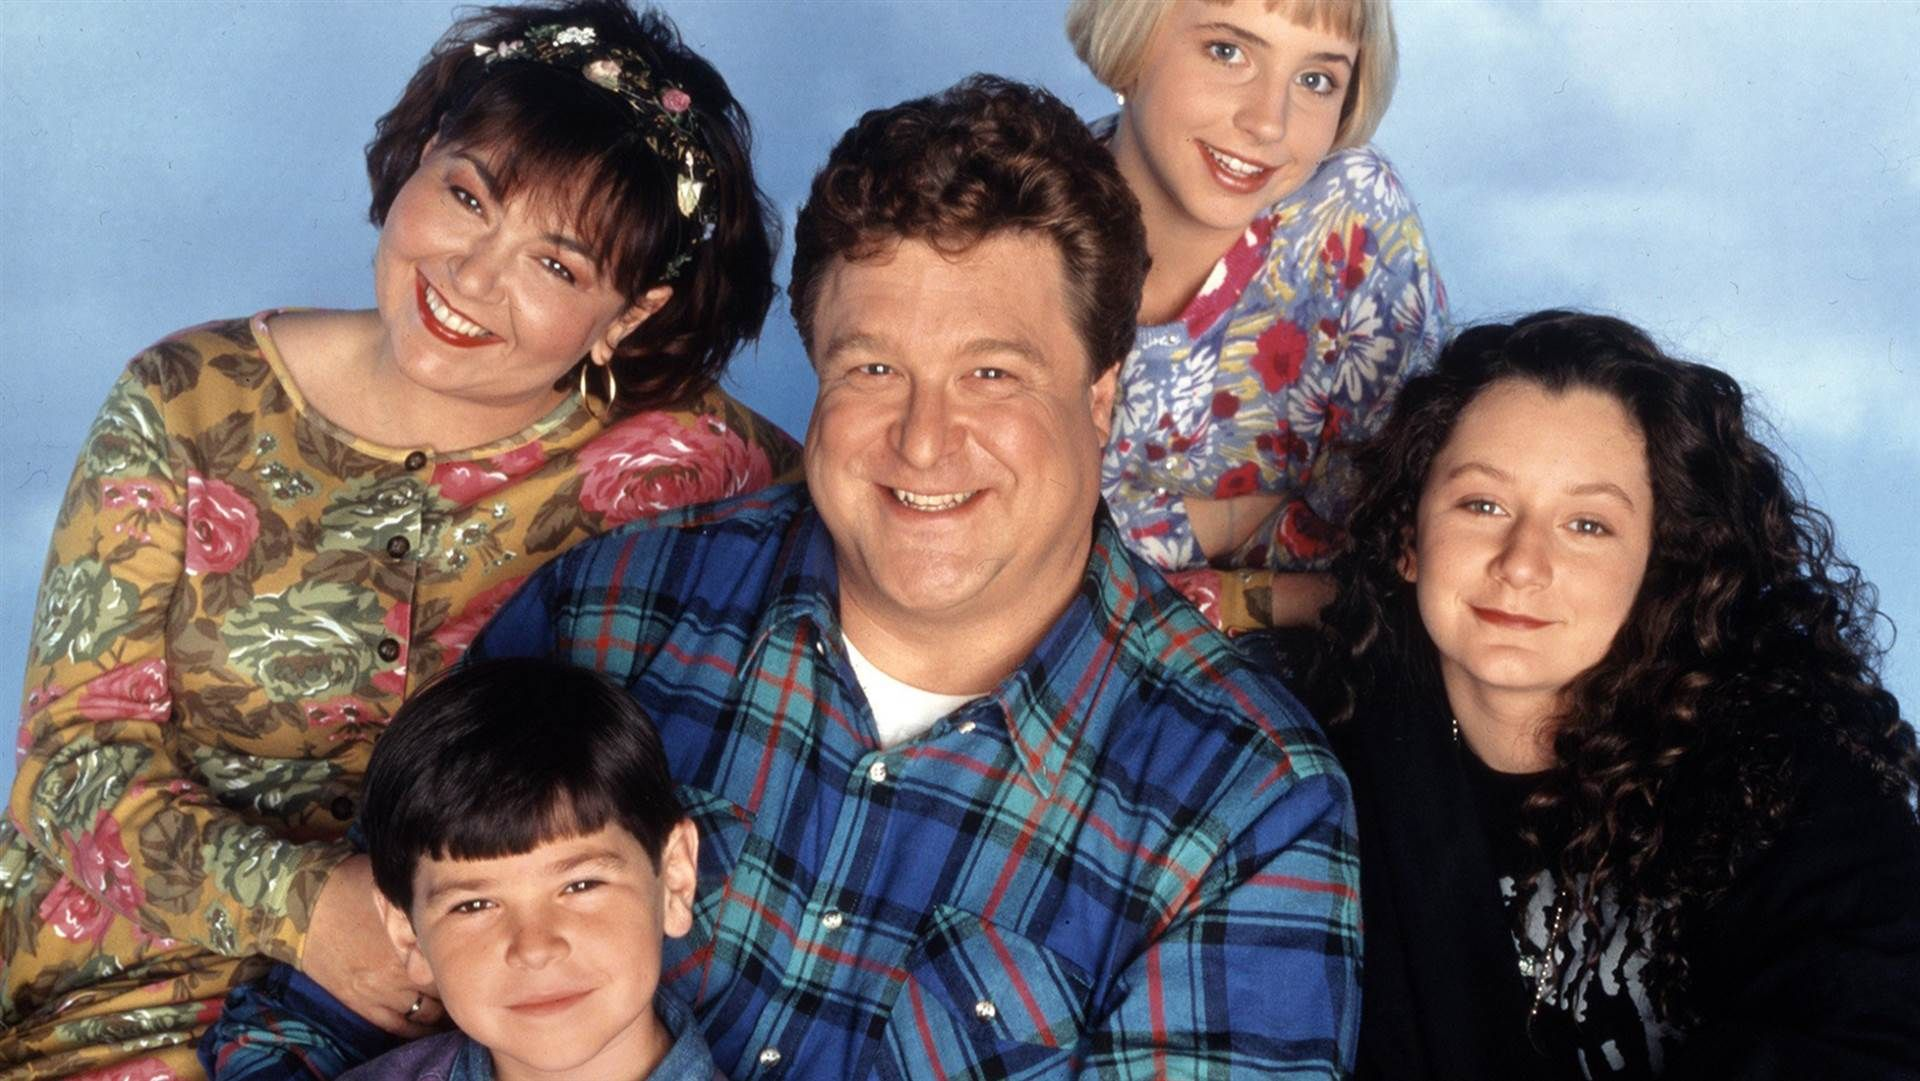 Cast of 'Roseanne'